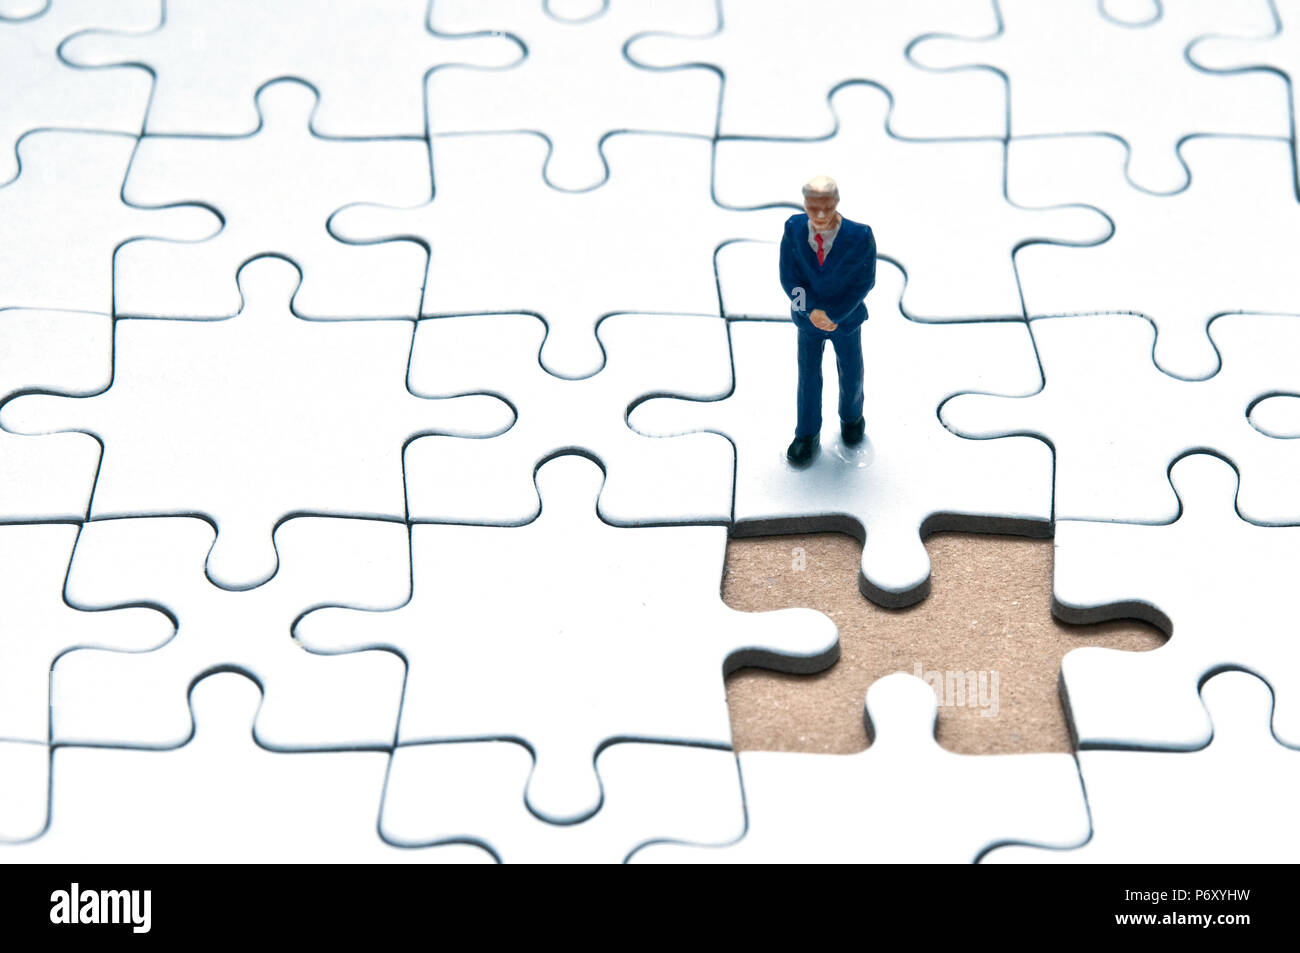 miniature figurine of a businessman standing on a jigsaw puzzle with a missing piece, concept for problem solving and management critical decisions - Stock Image